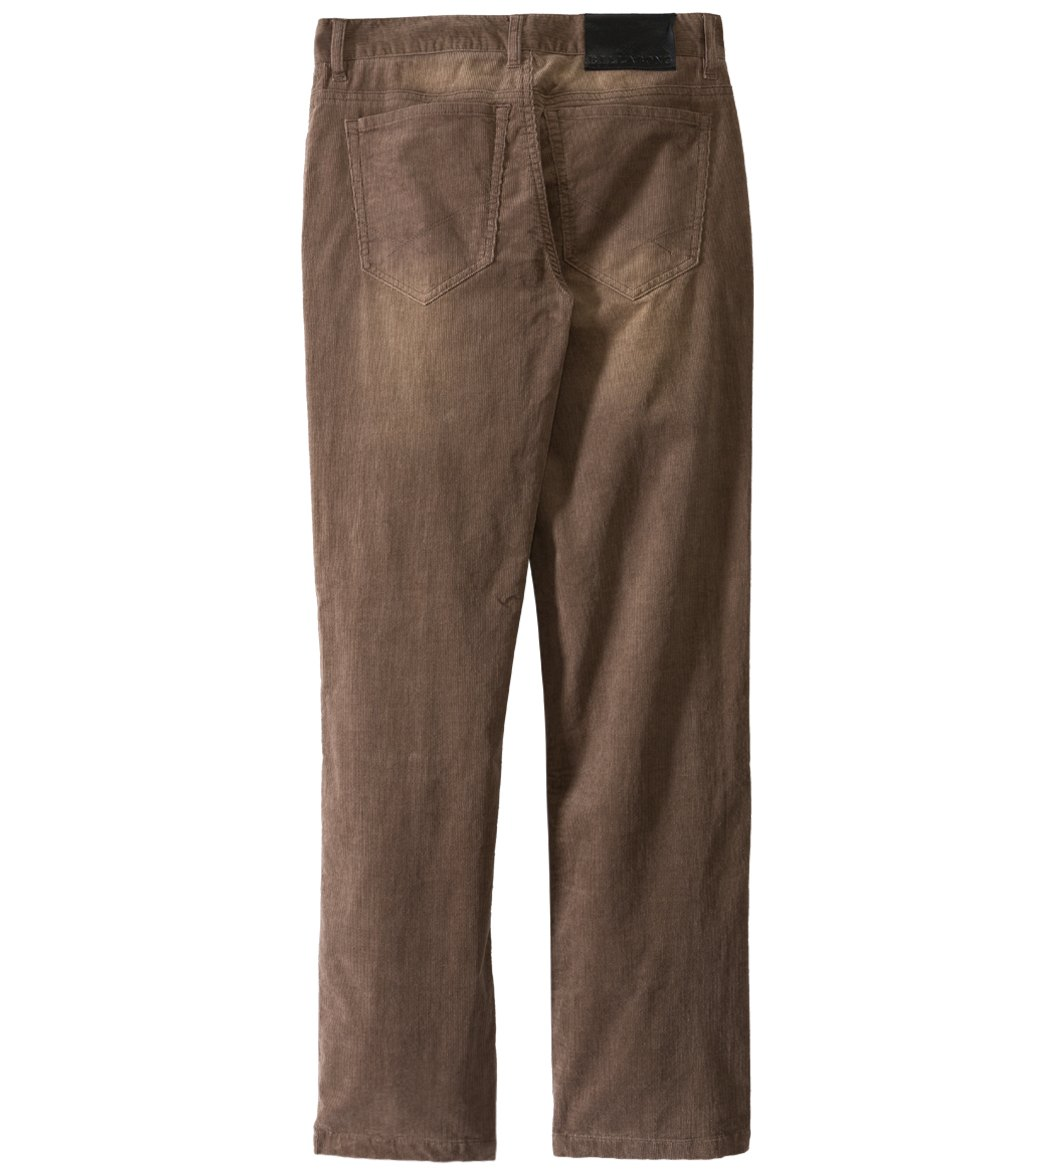 Billabong Men's Amplified Cord Pants at SwimOutlet.com - Free Shipping